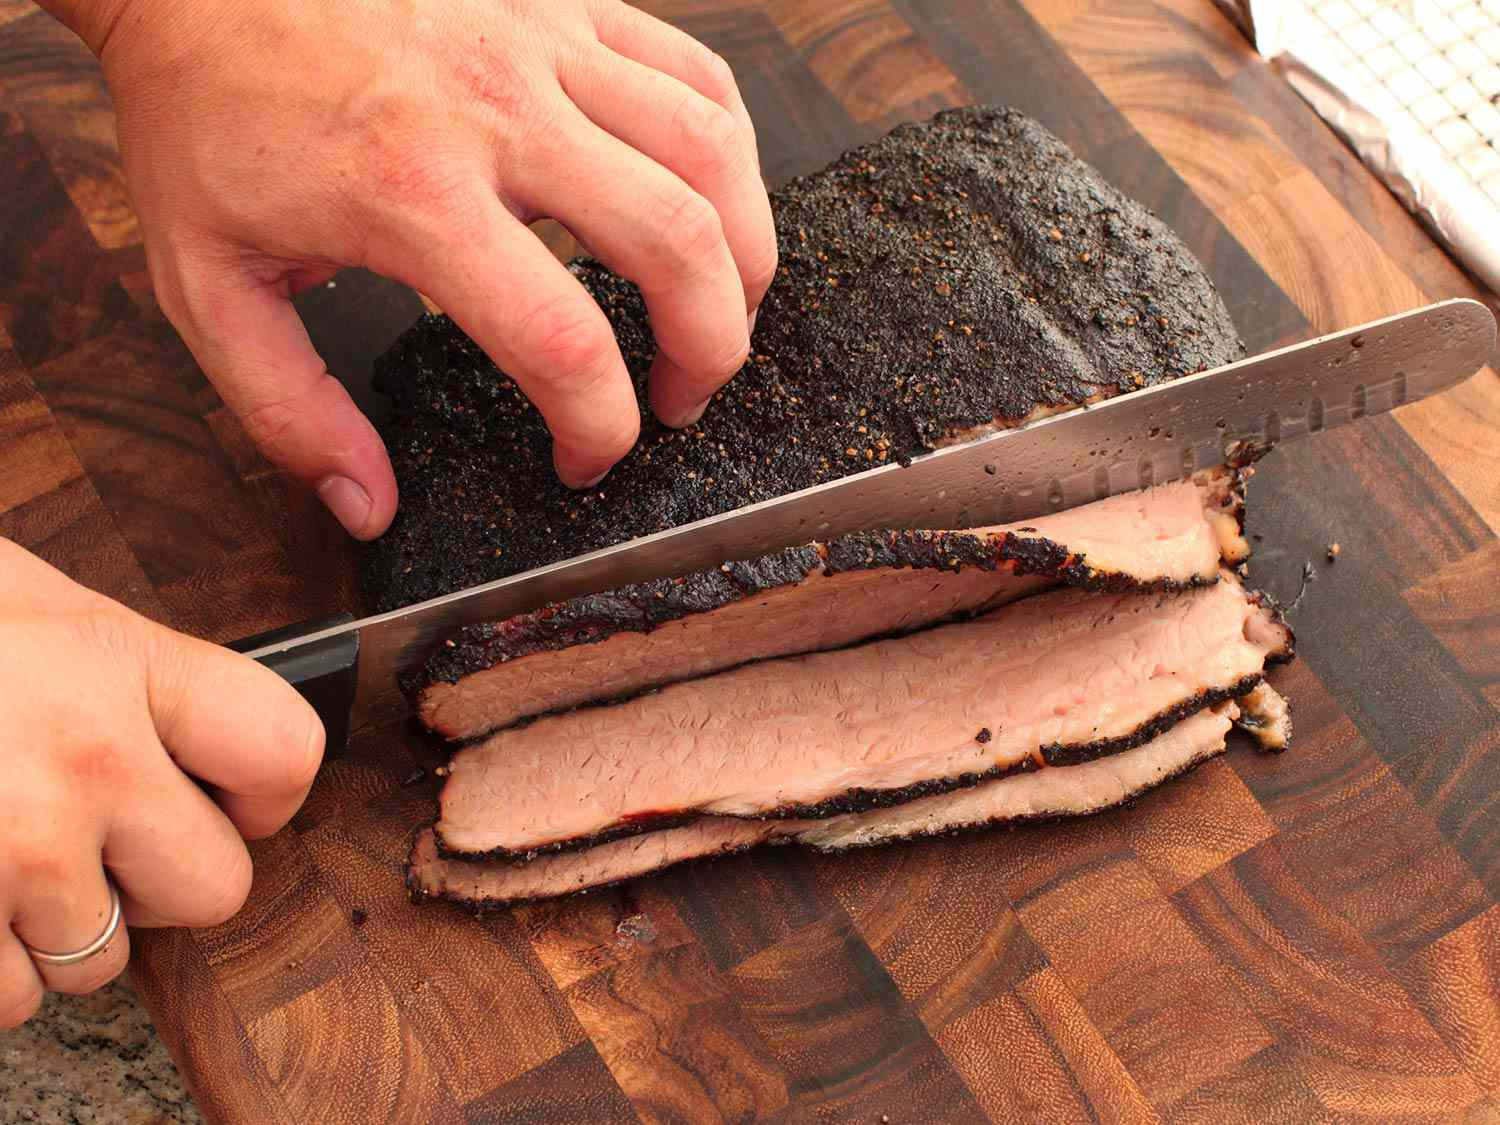 Cutting a finished brisket into slices on a wooden cutting board